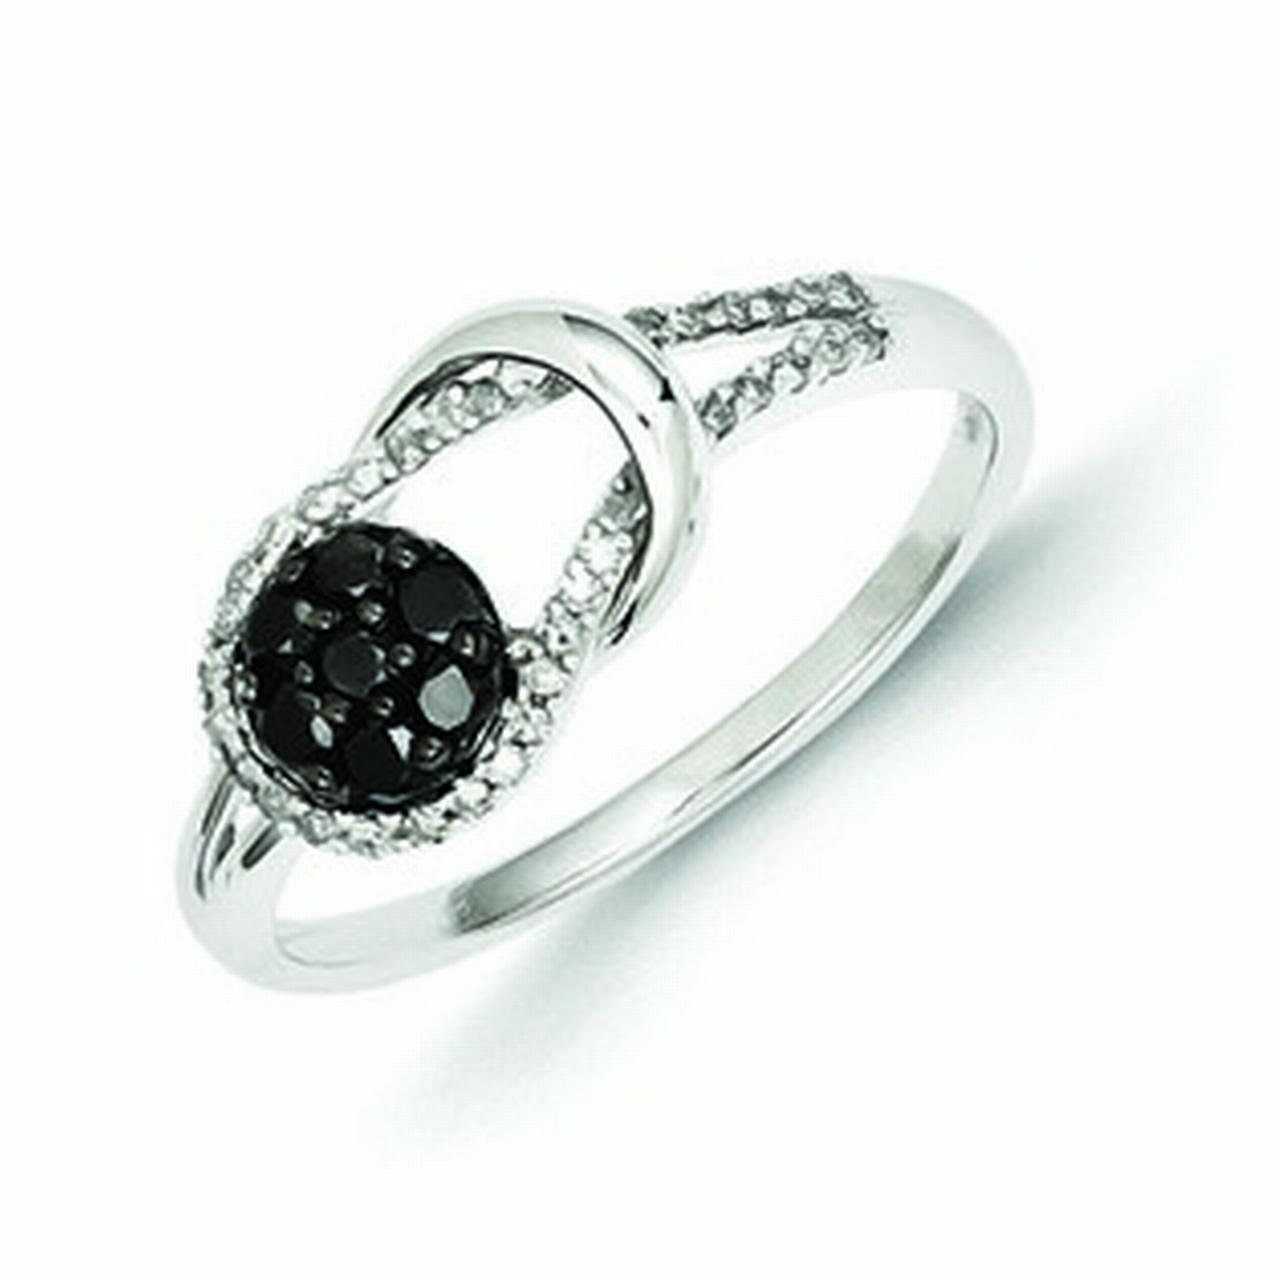 Sterling Silver Black and White Diamond Love Knot Ring - Ring Size: 6 to 8